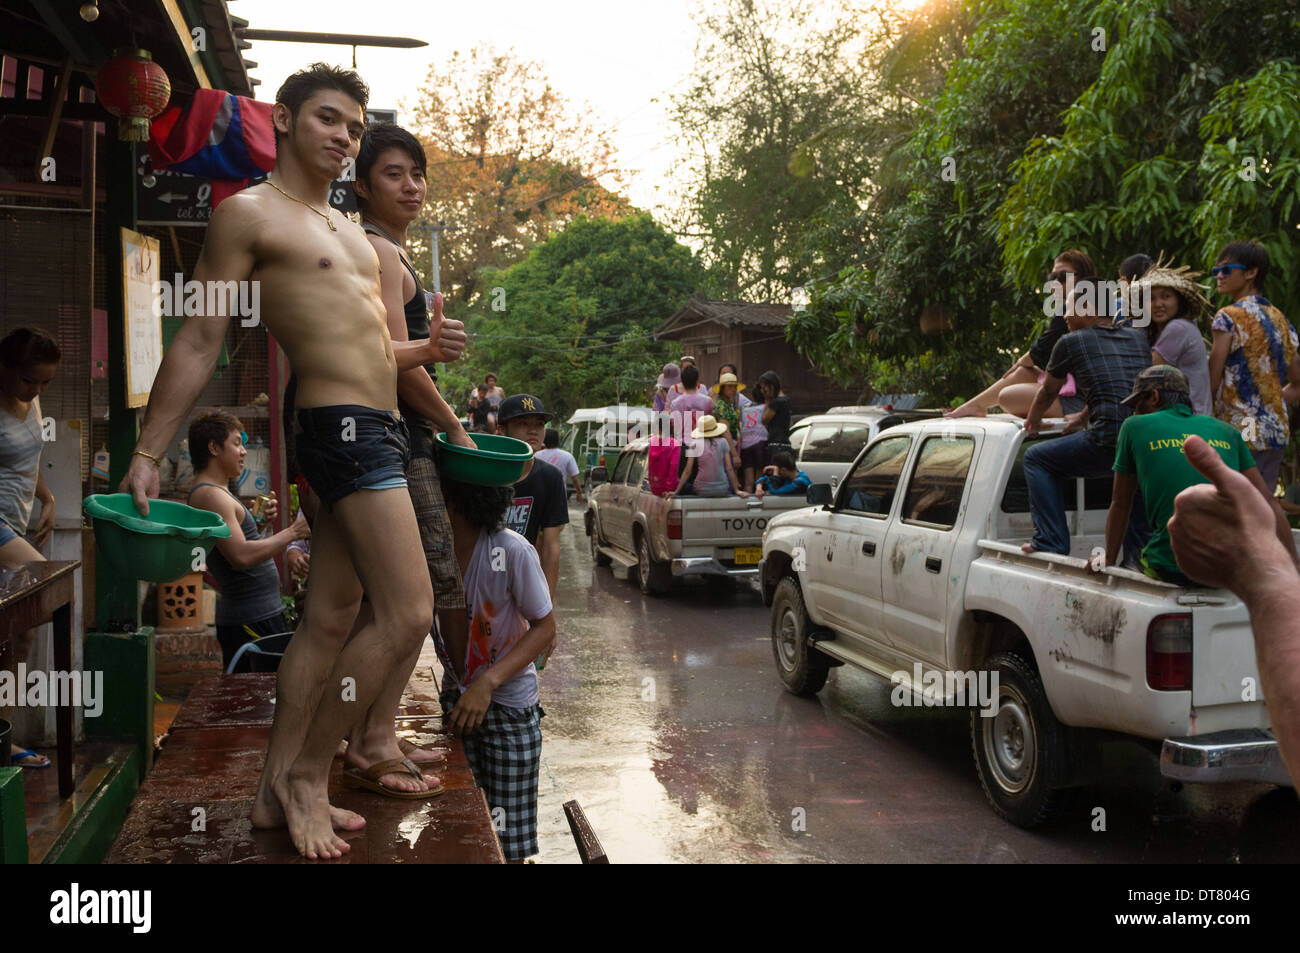 Camp Lao boys taking part in water fights on Mue Nau, the middle day of Lao New Year (Pi Mai Lao), Luang Prabang, Laos - Stock Image